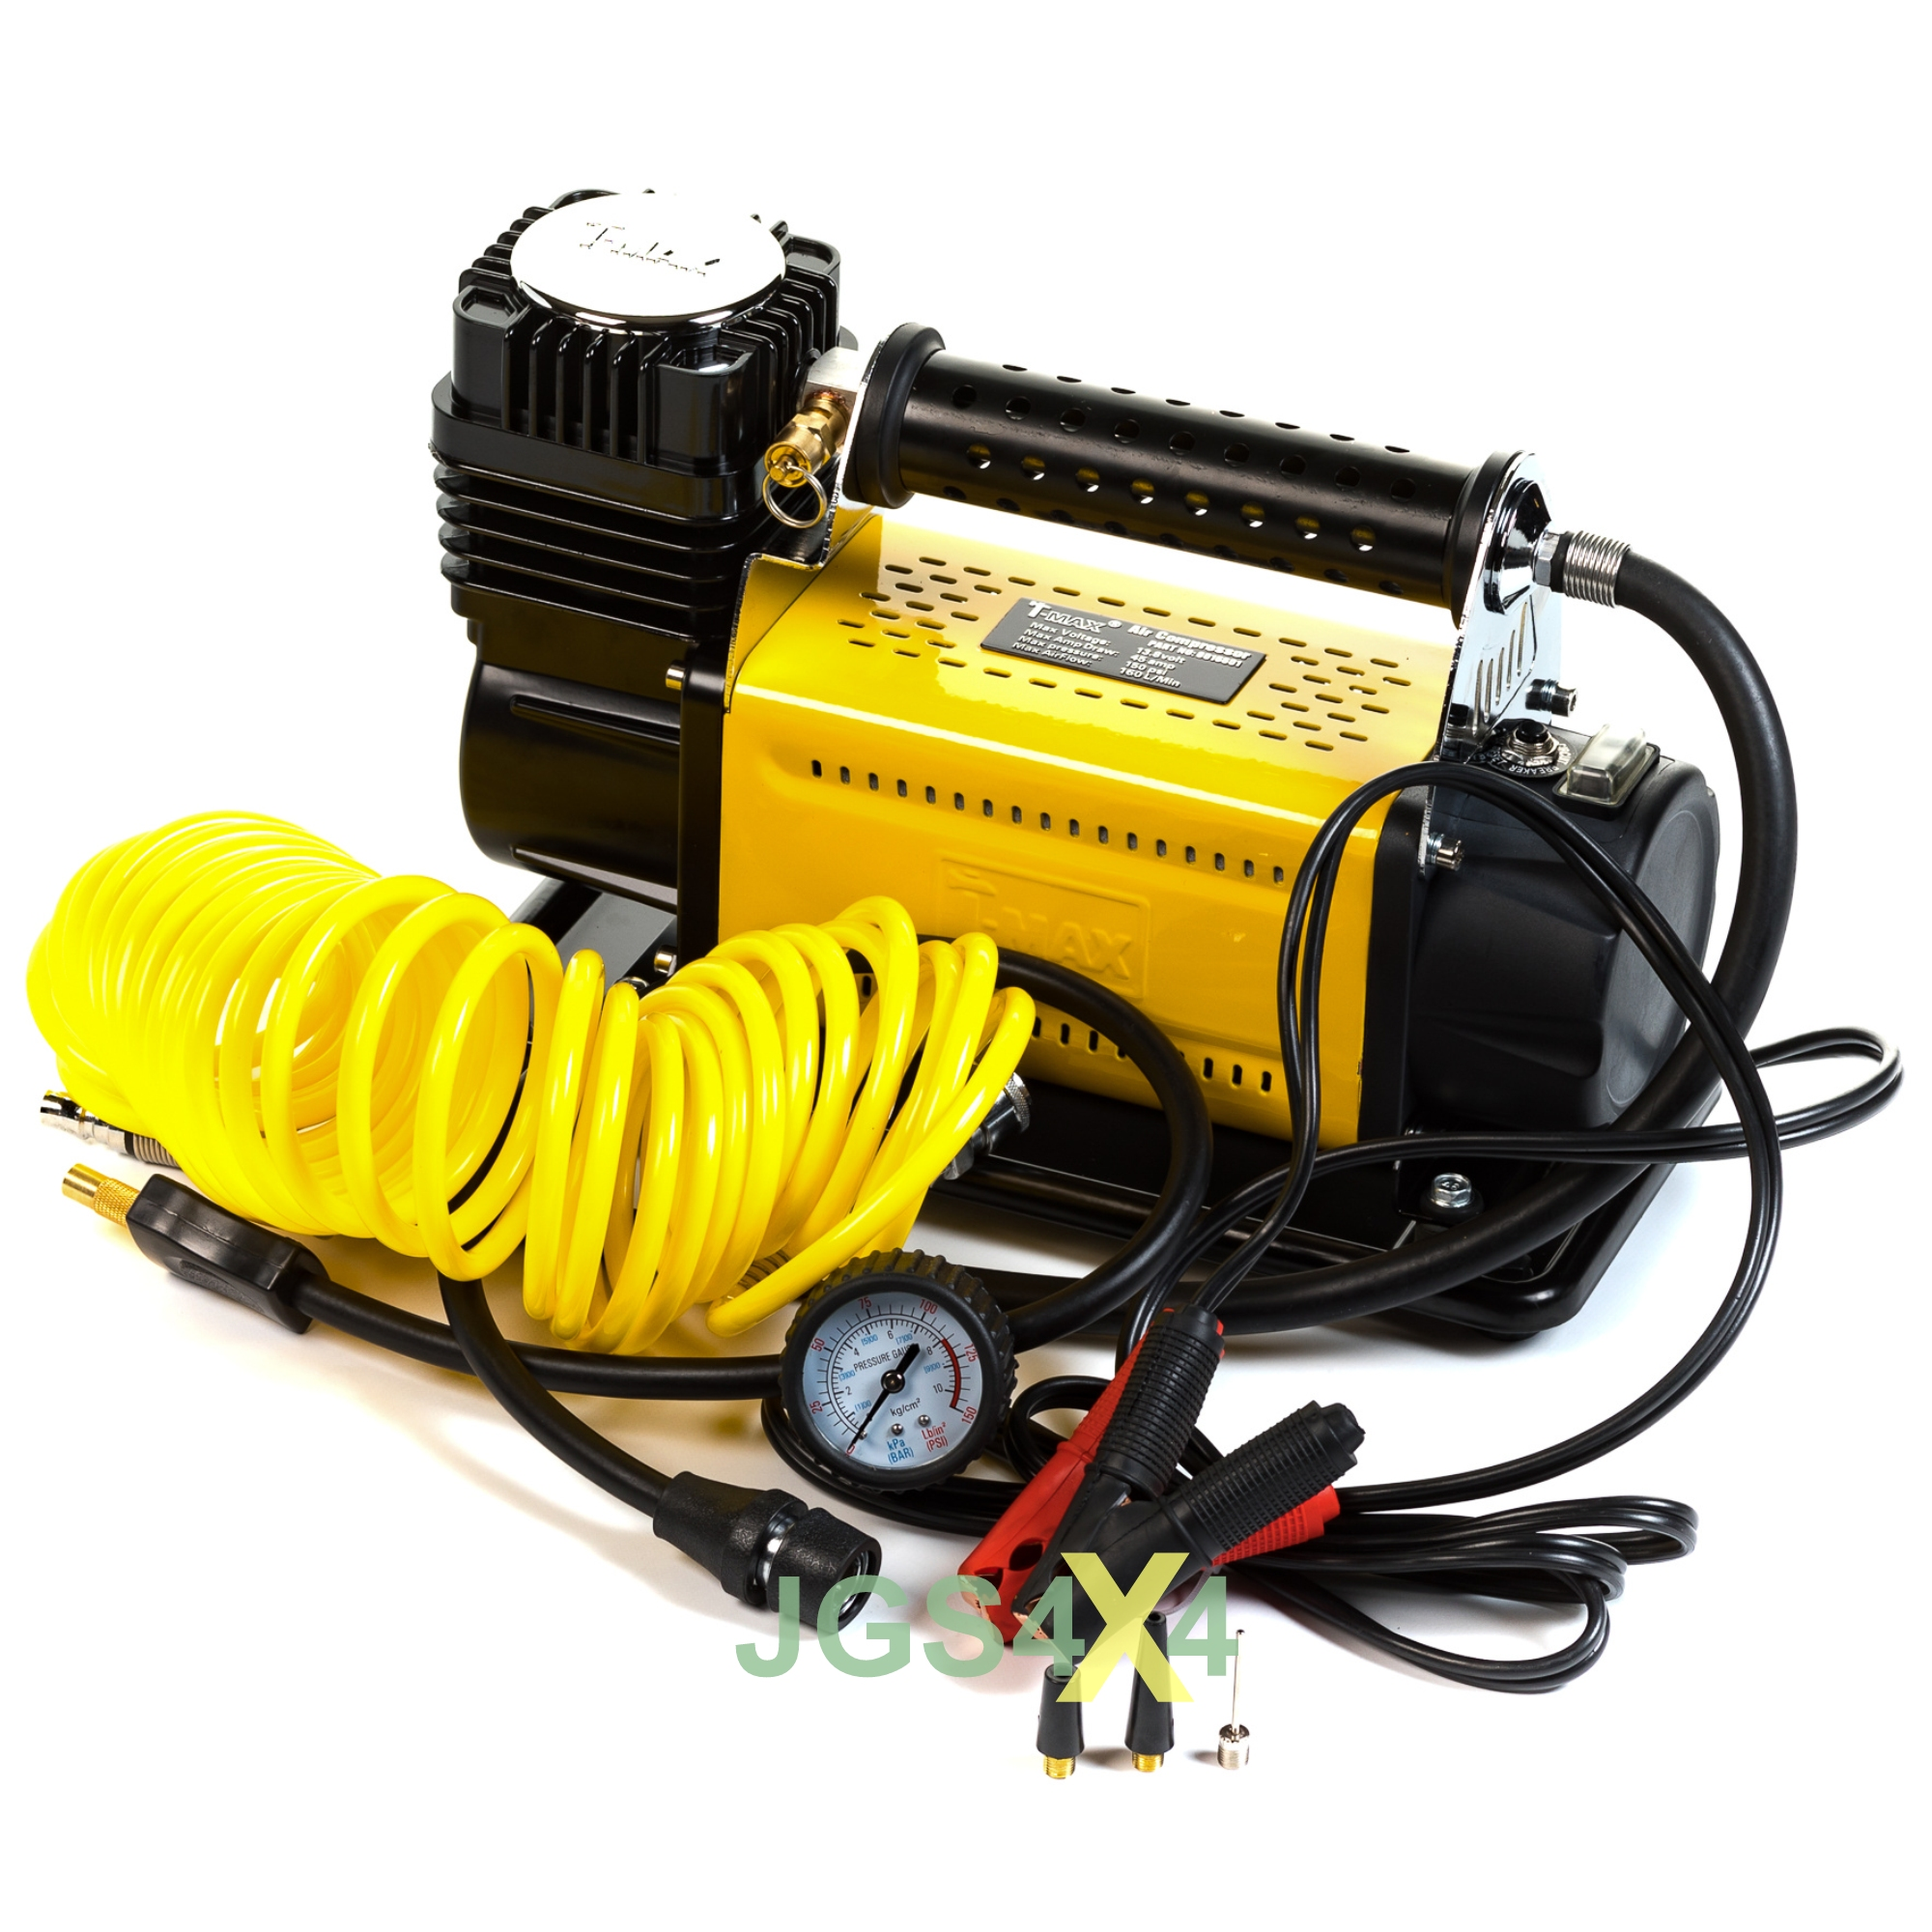 T-Max 12v Heavy Duty portable tyre compressor